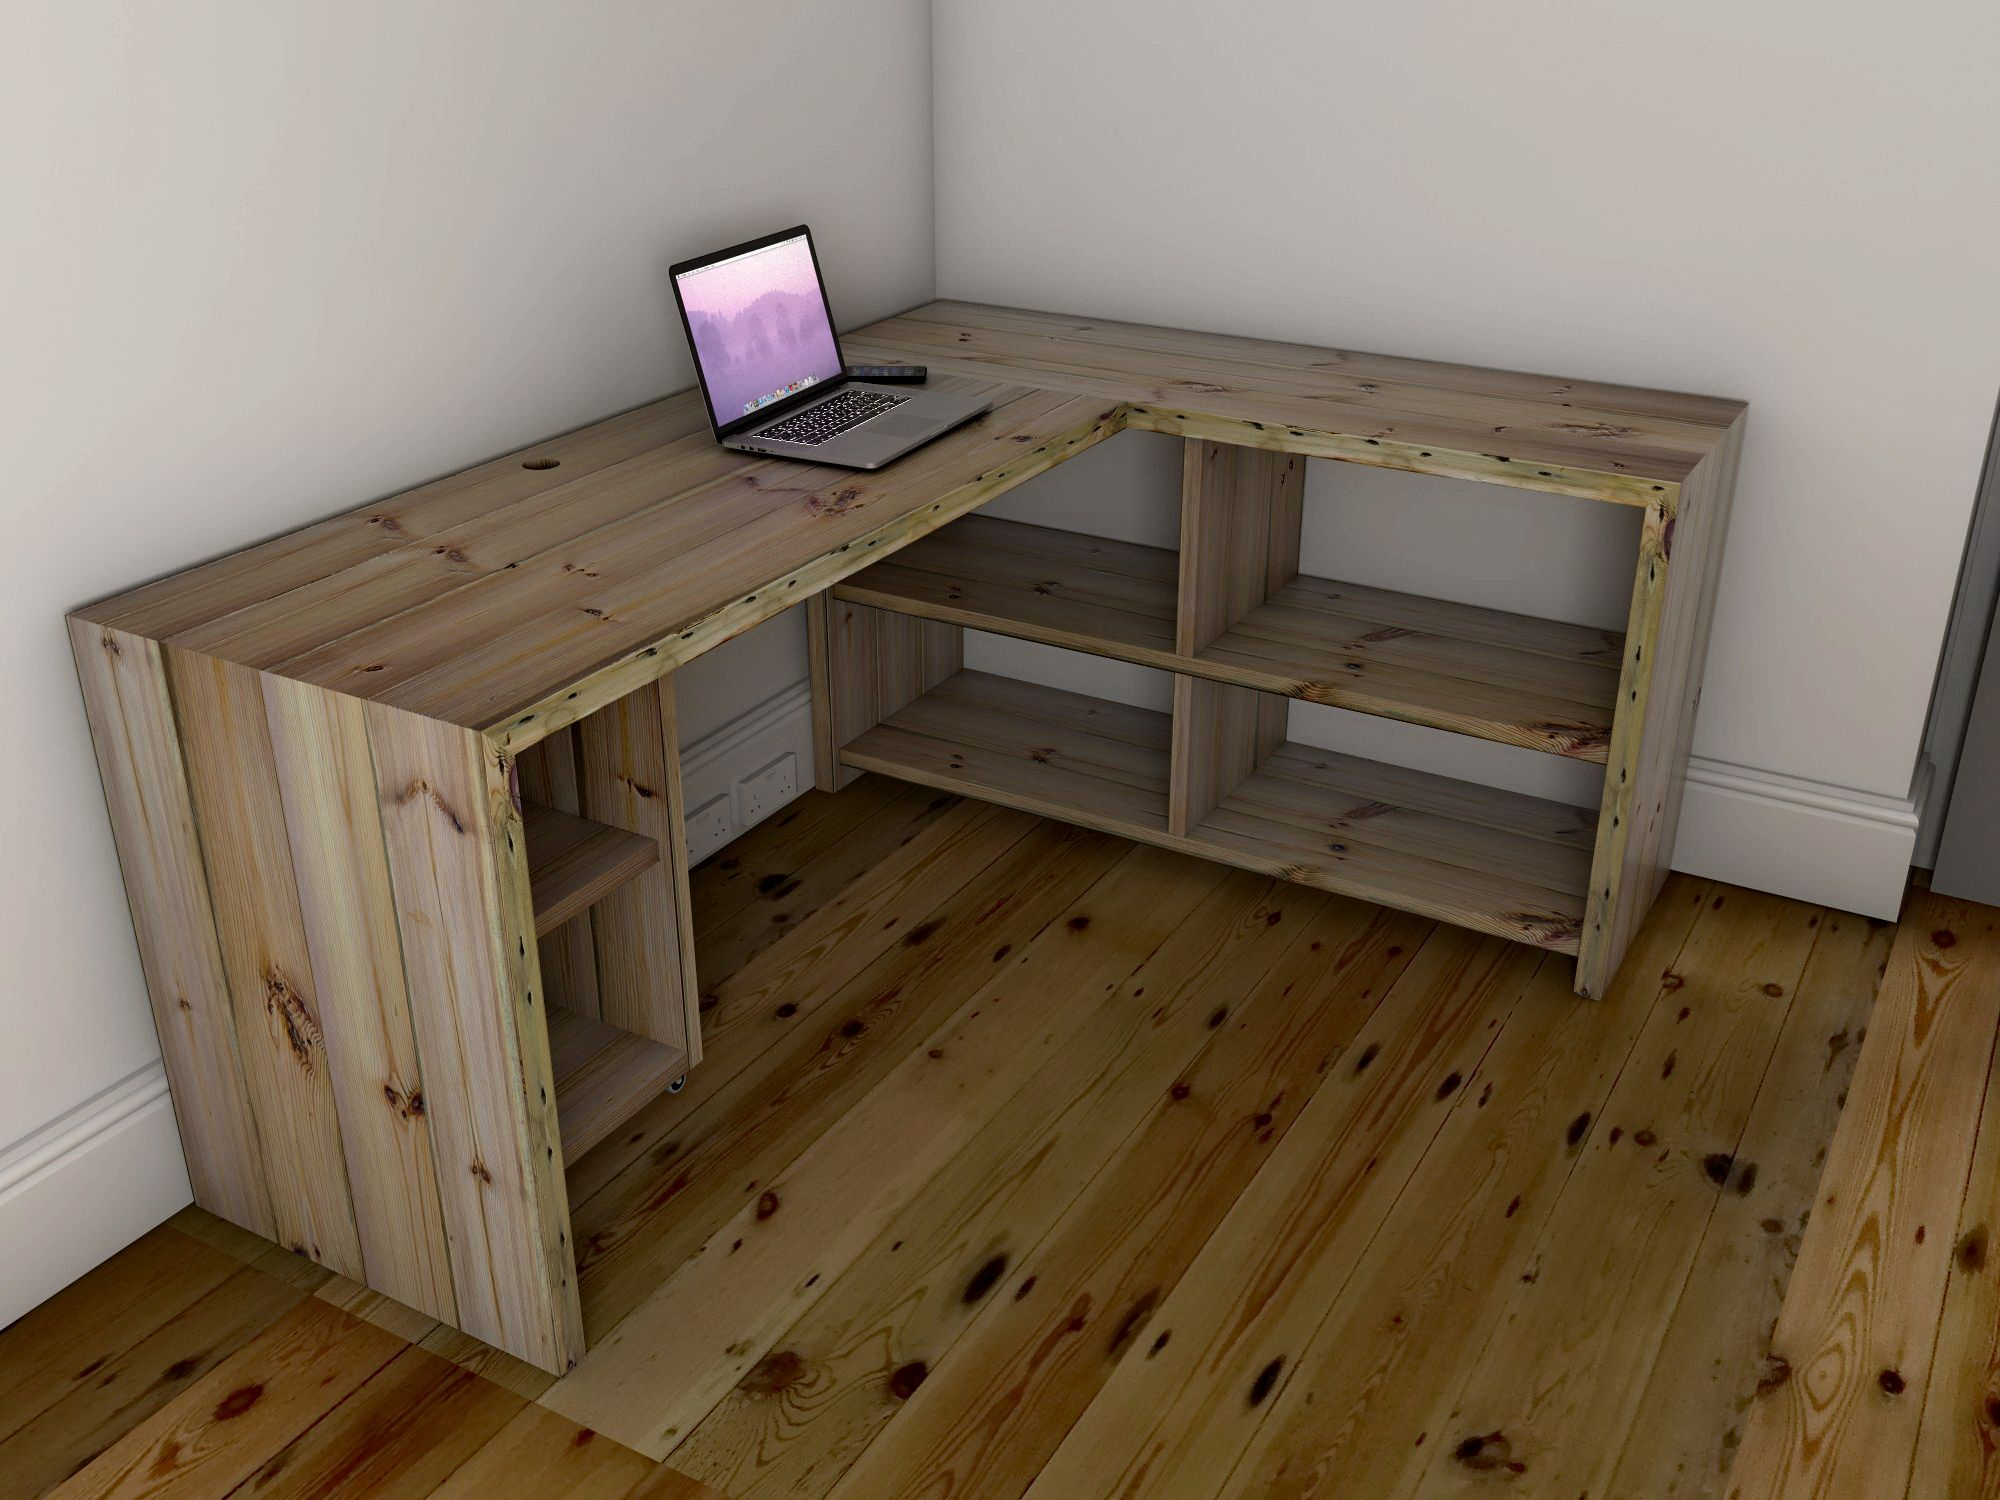 home also decor glassd art desk storage brown photos accent glass ideas with oak wooden deco cabinet and table simple office desks paintted wood furniture top drawer stunning